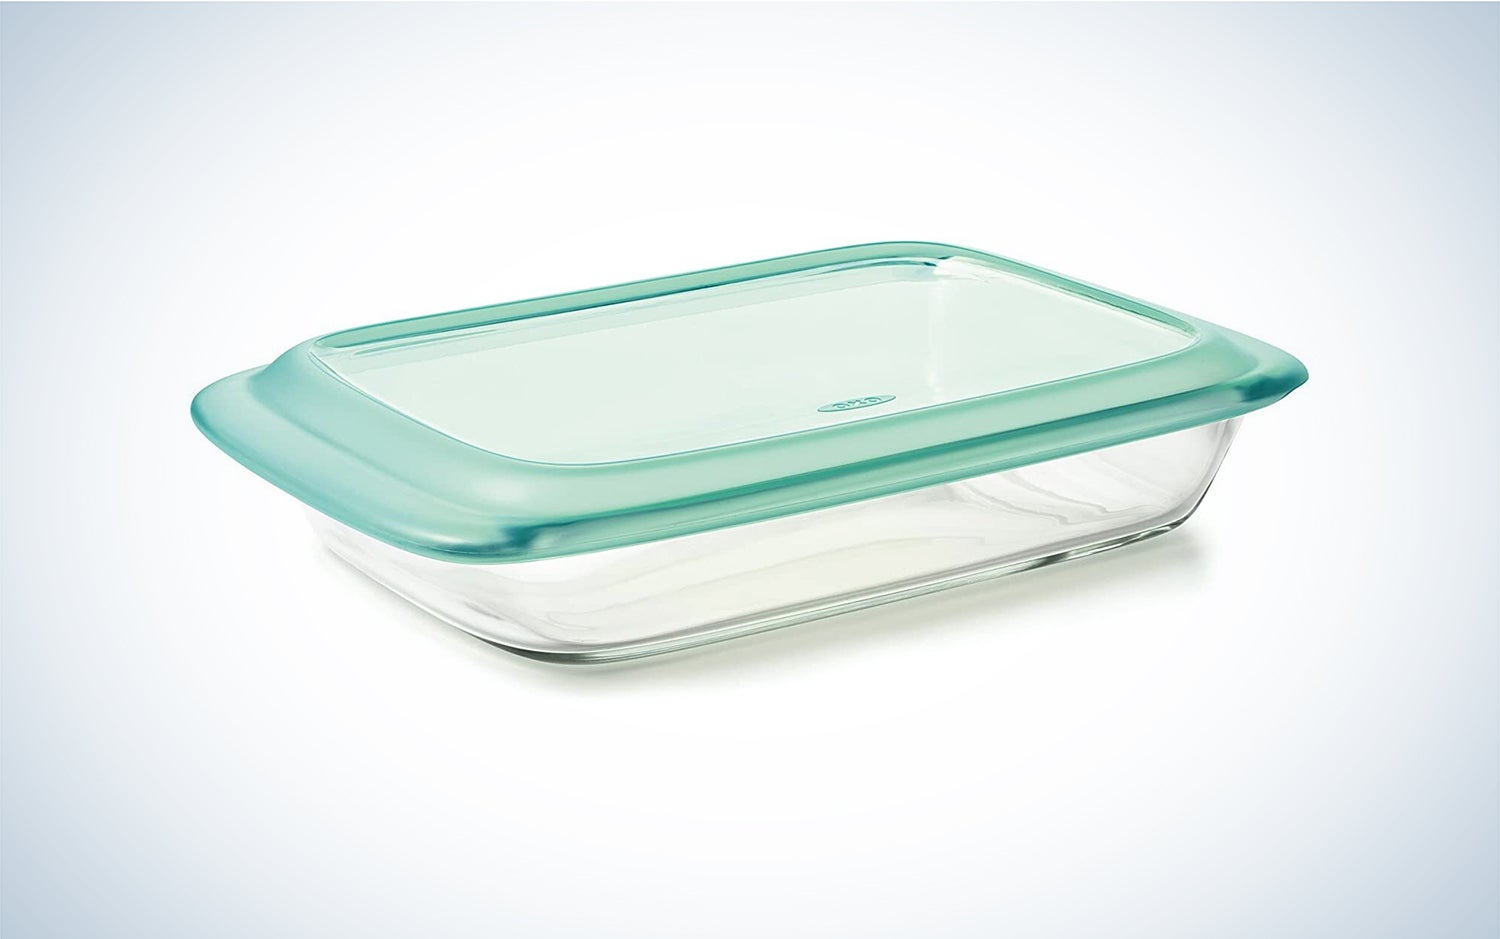 OXO Good Grips Freezer-to-Oven Safe Baking Dish ($15.99)